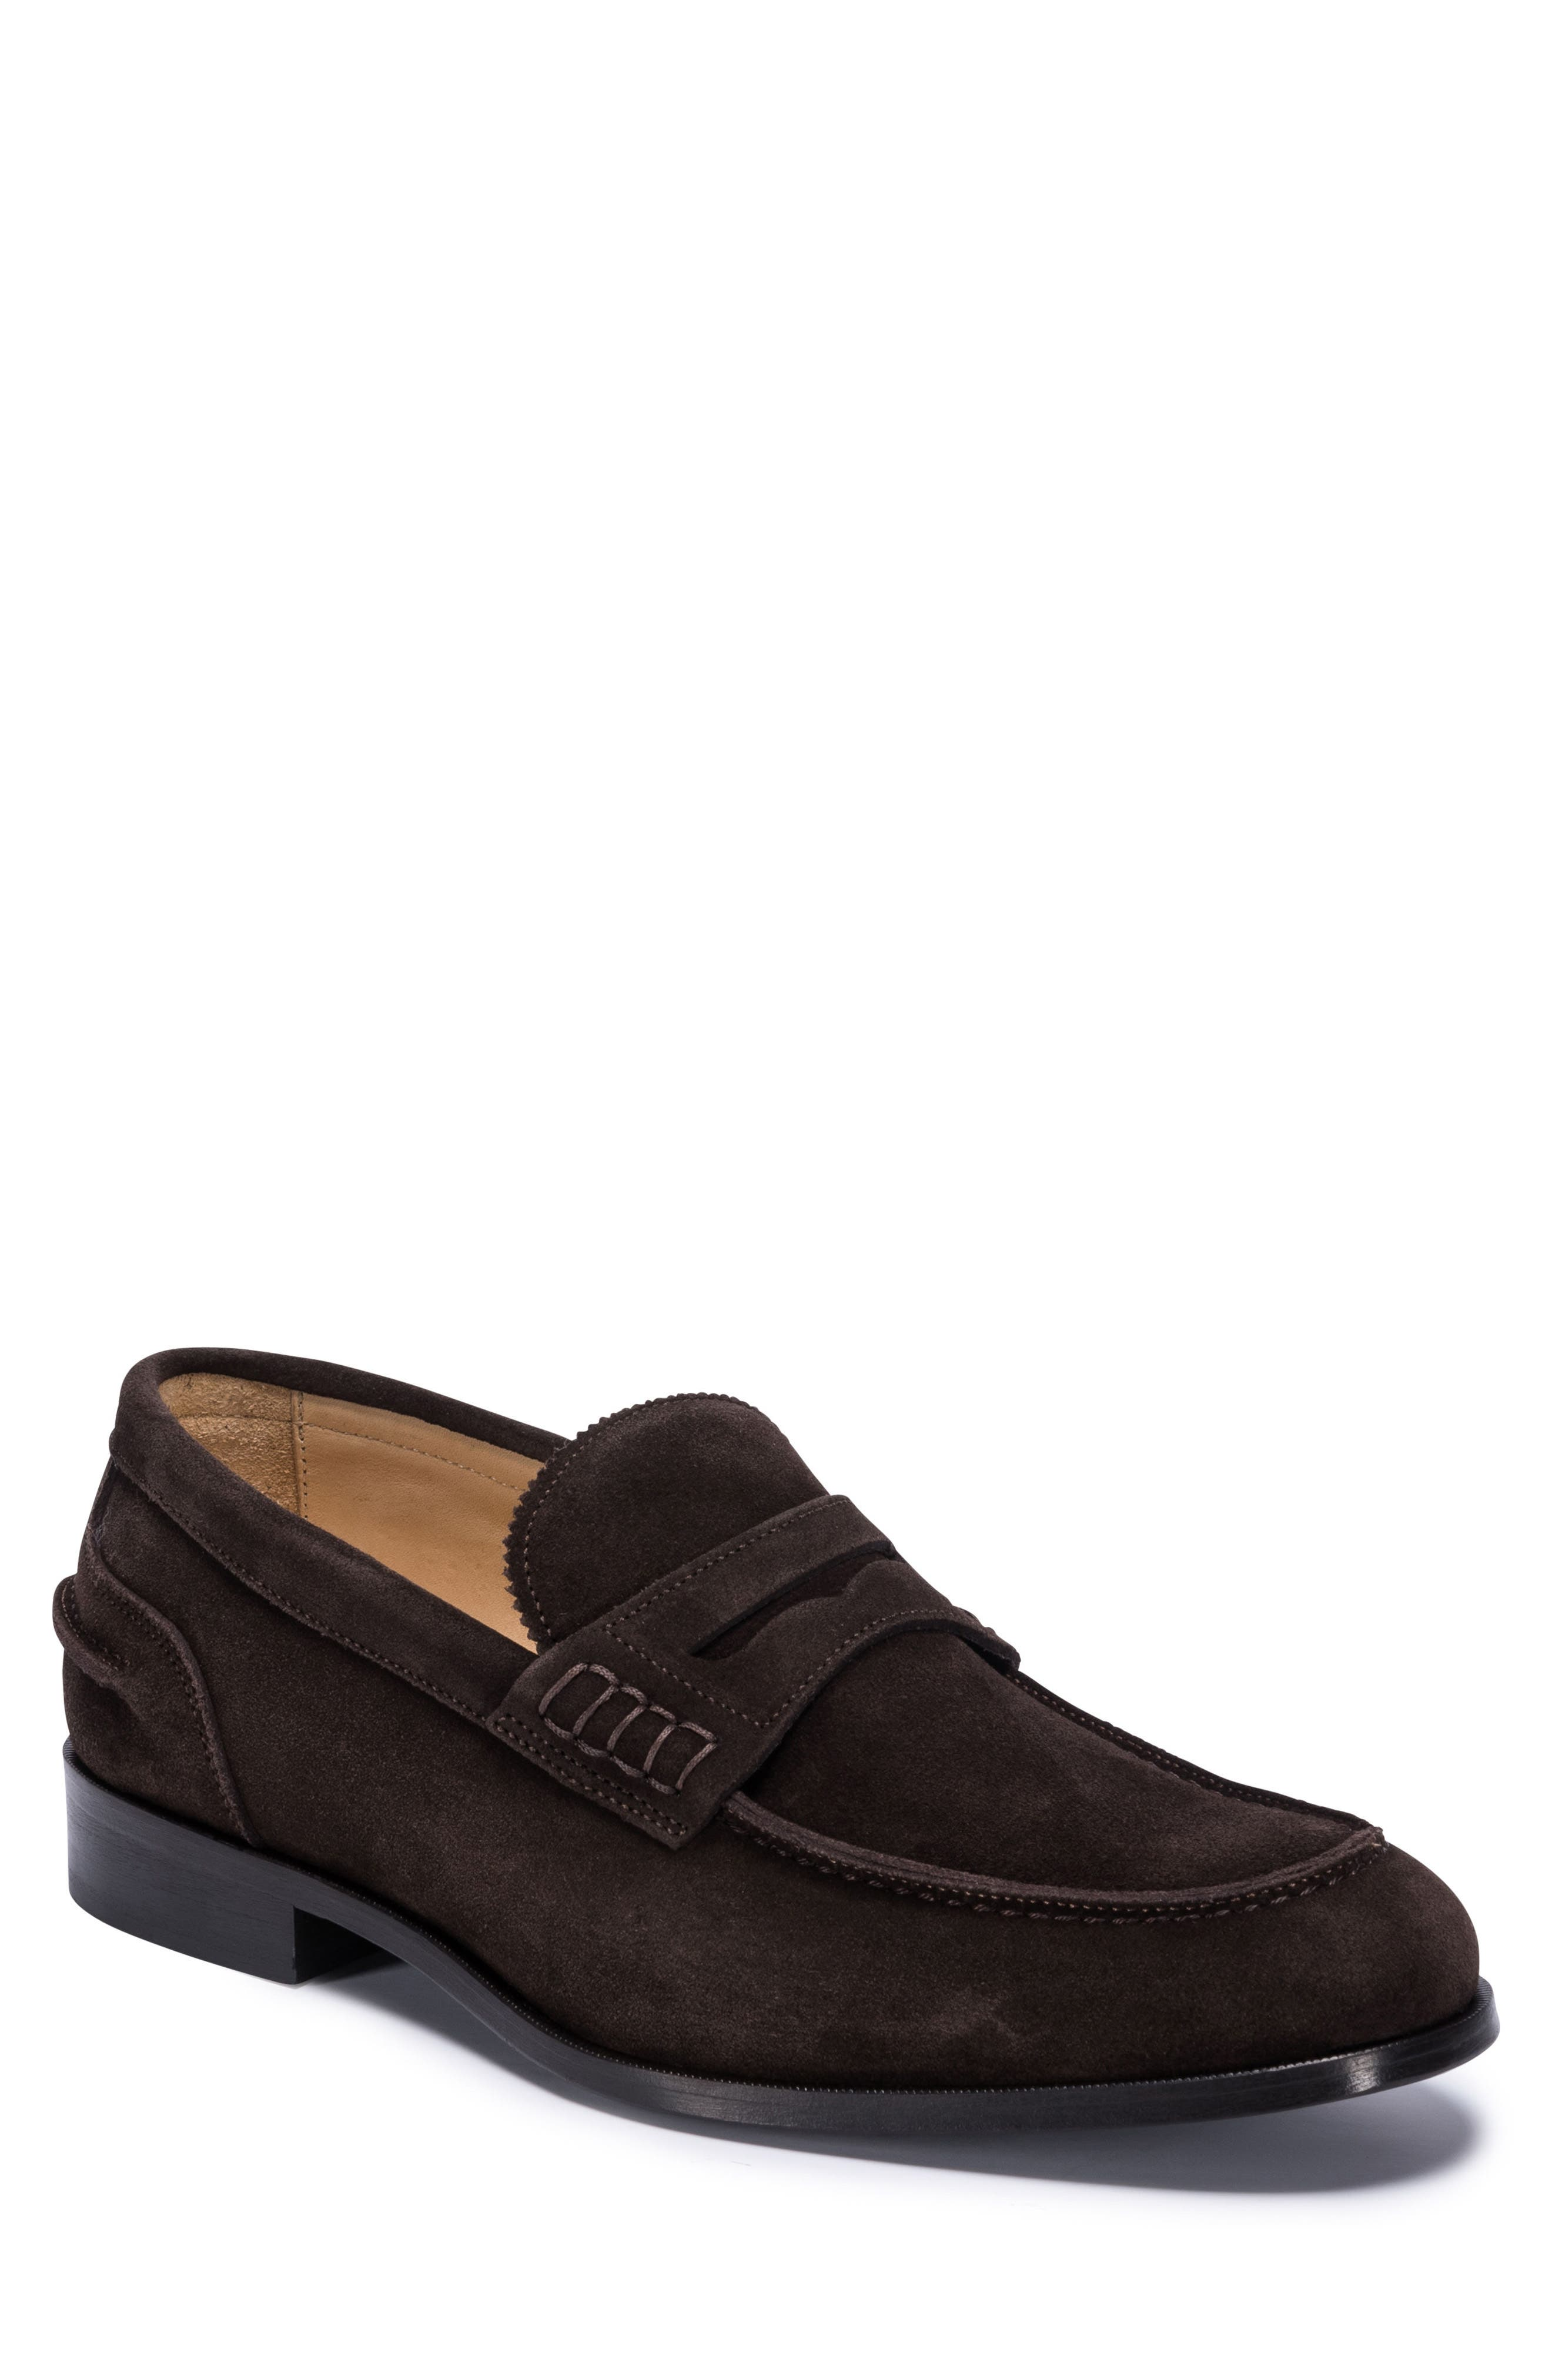 Torino Penny Loafer,                             Main thumbnail 1, color,                             BROWN SUEDE